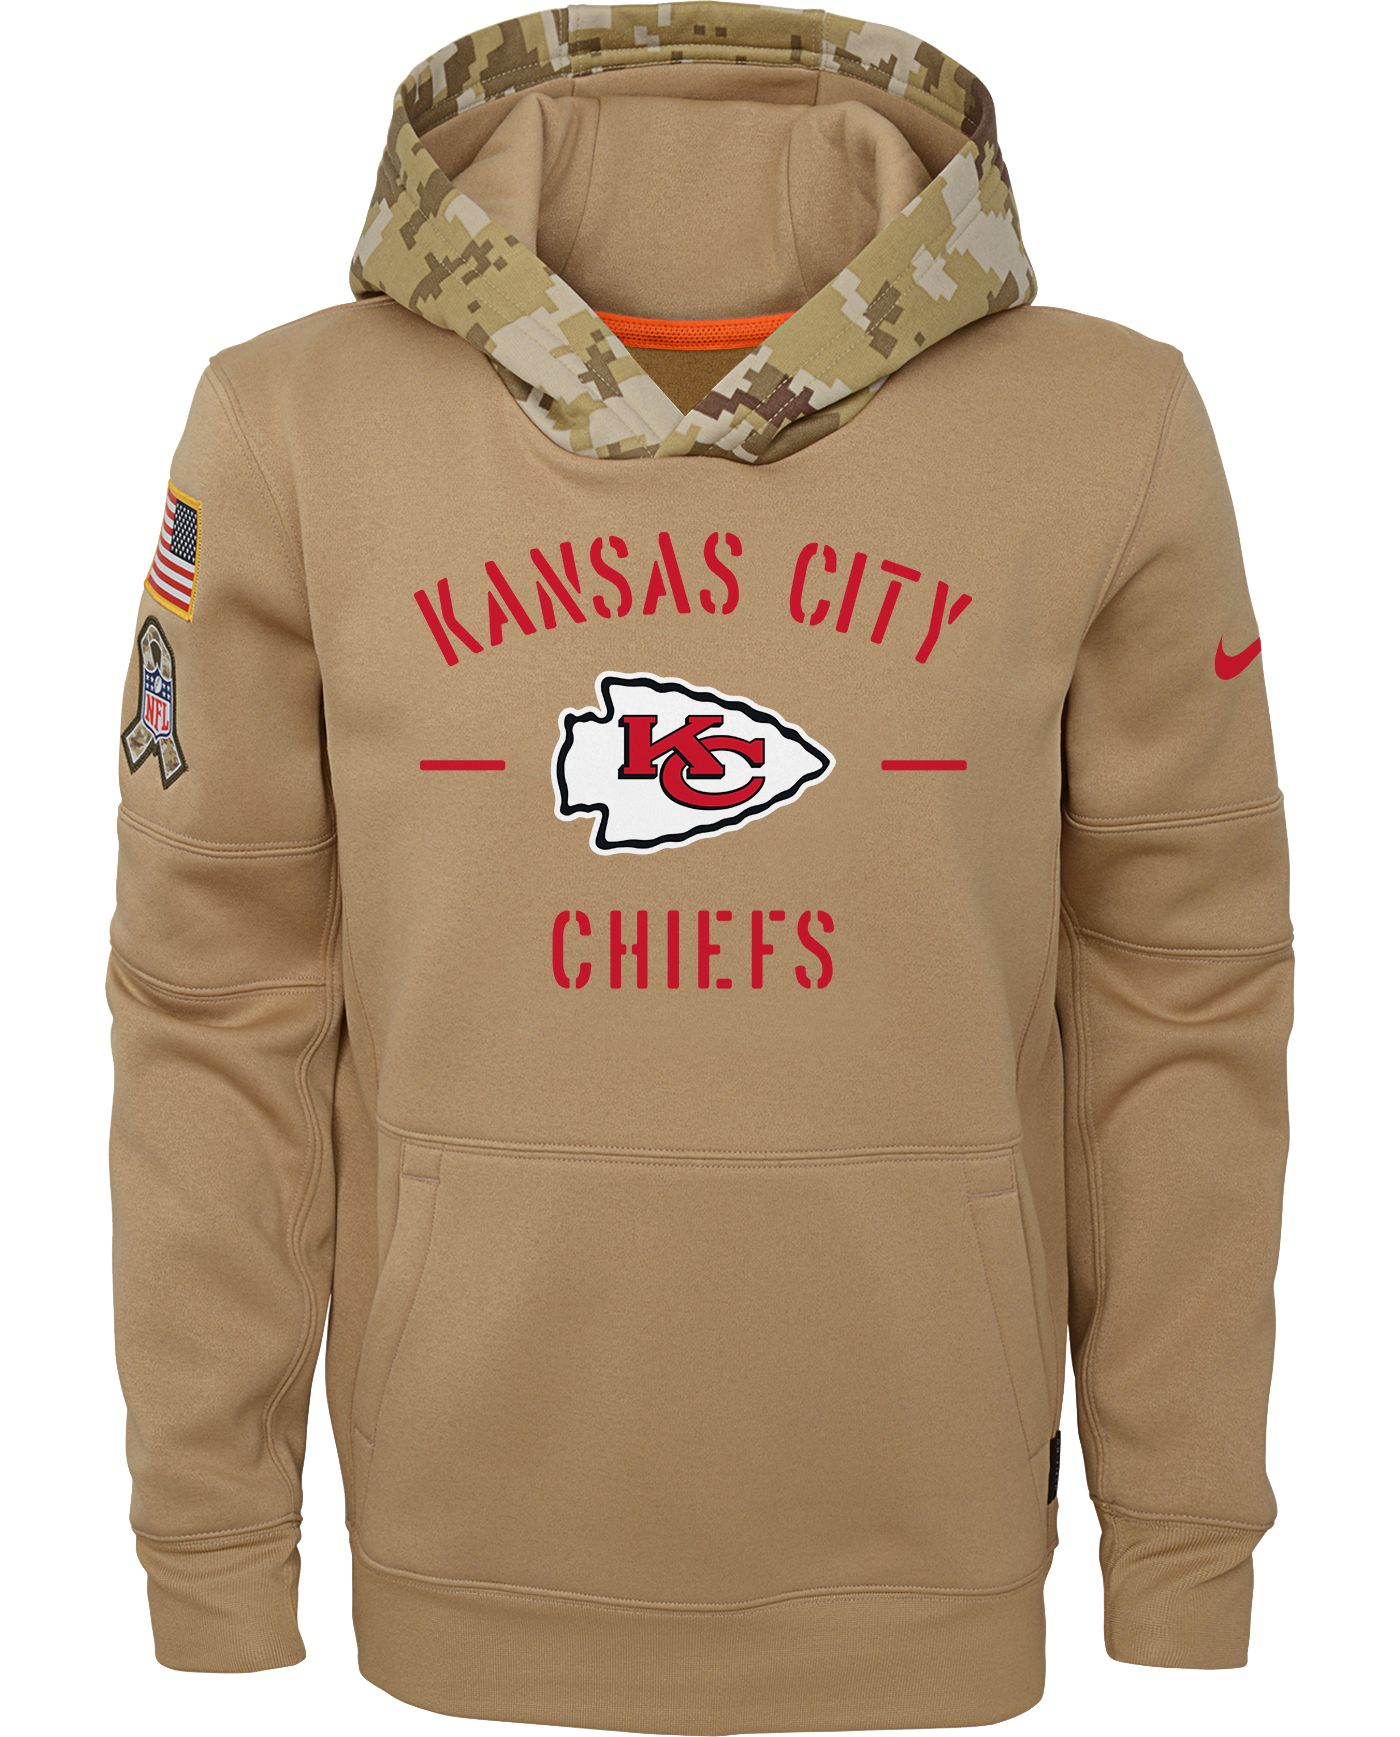 Nike Youth Salute to Service Kansas City Chiefs Therma-FIT Beige Camo Hoodie